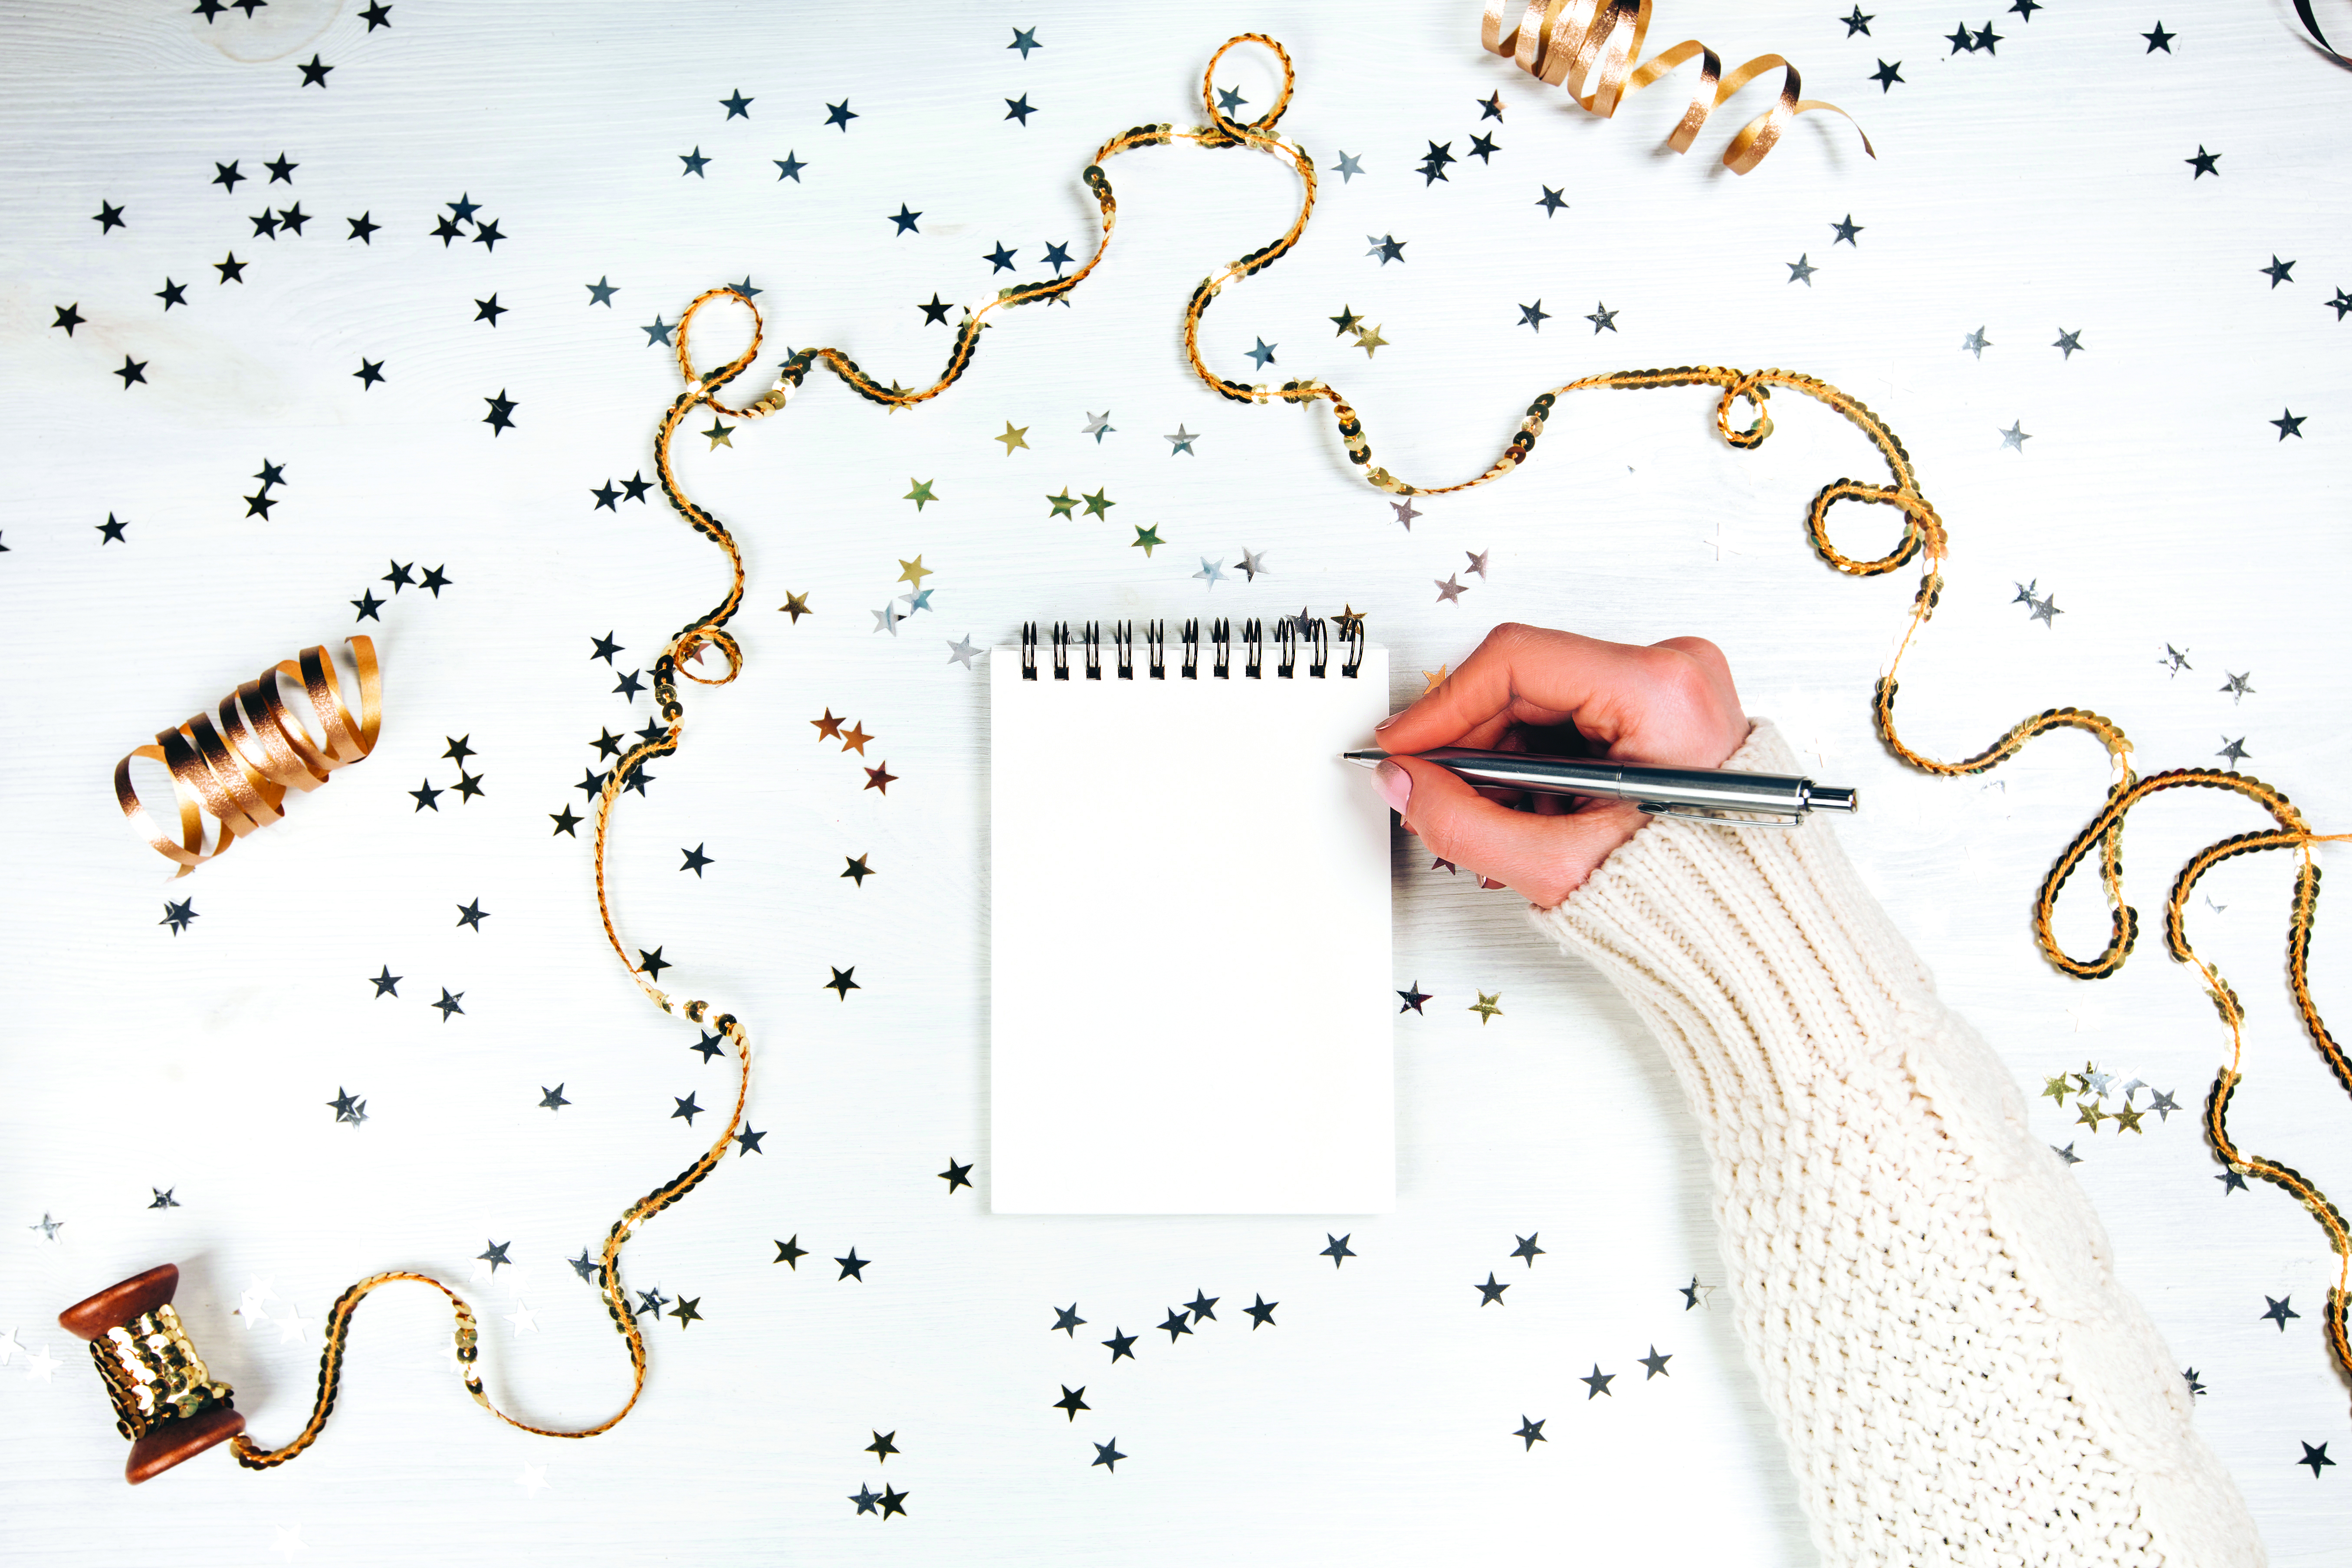 Classic New Year resolutions made and broken